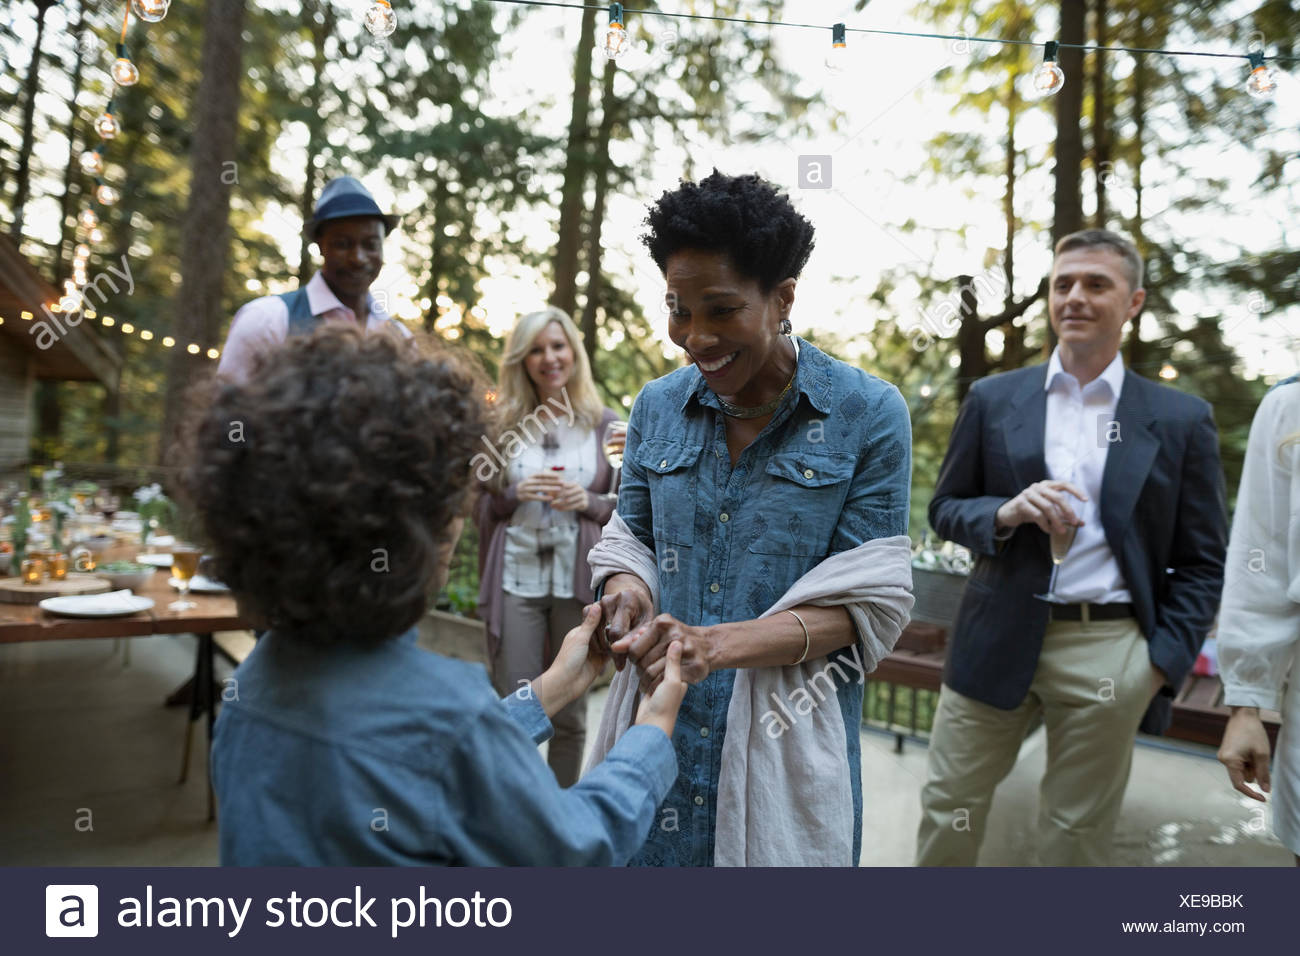 Grandmother and grandson dancing at party on balcony - Stock Image